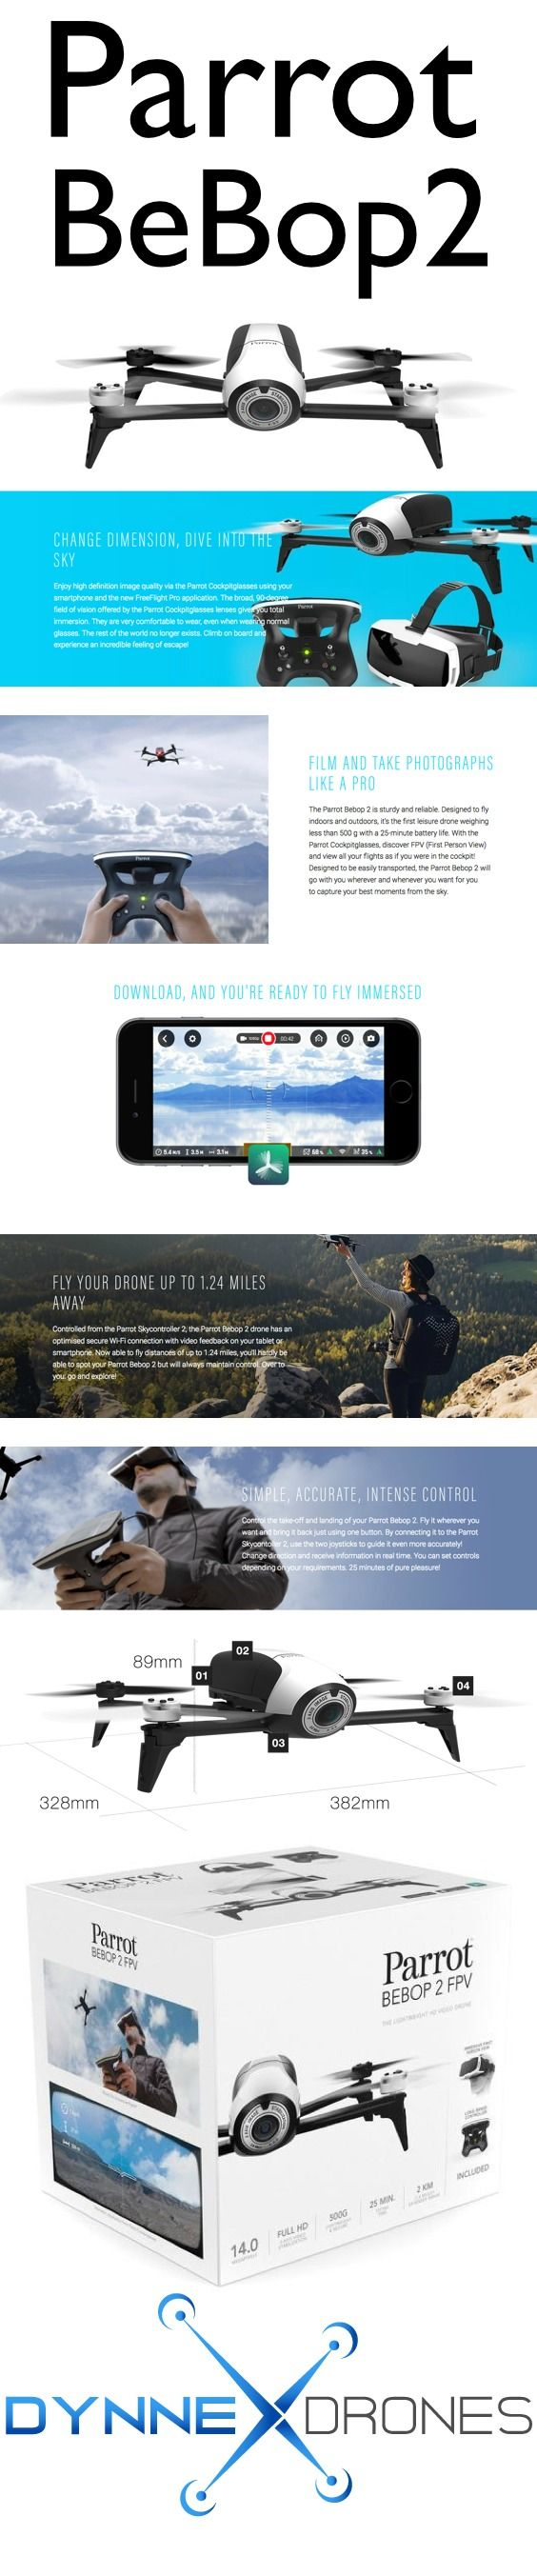 1000 ideas about drone photography on pinterest aerial for Flights buy now pay later